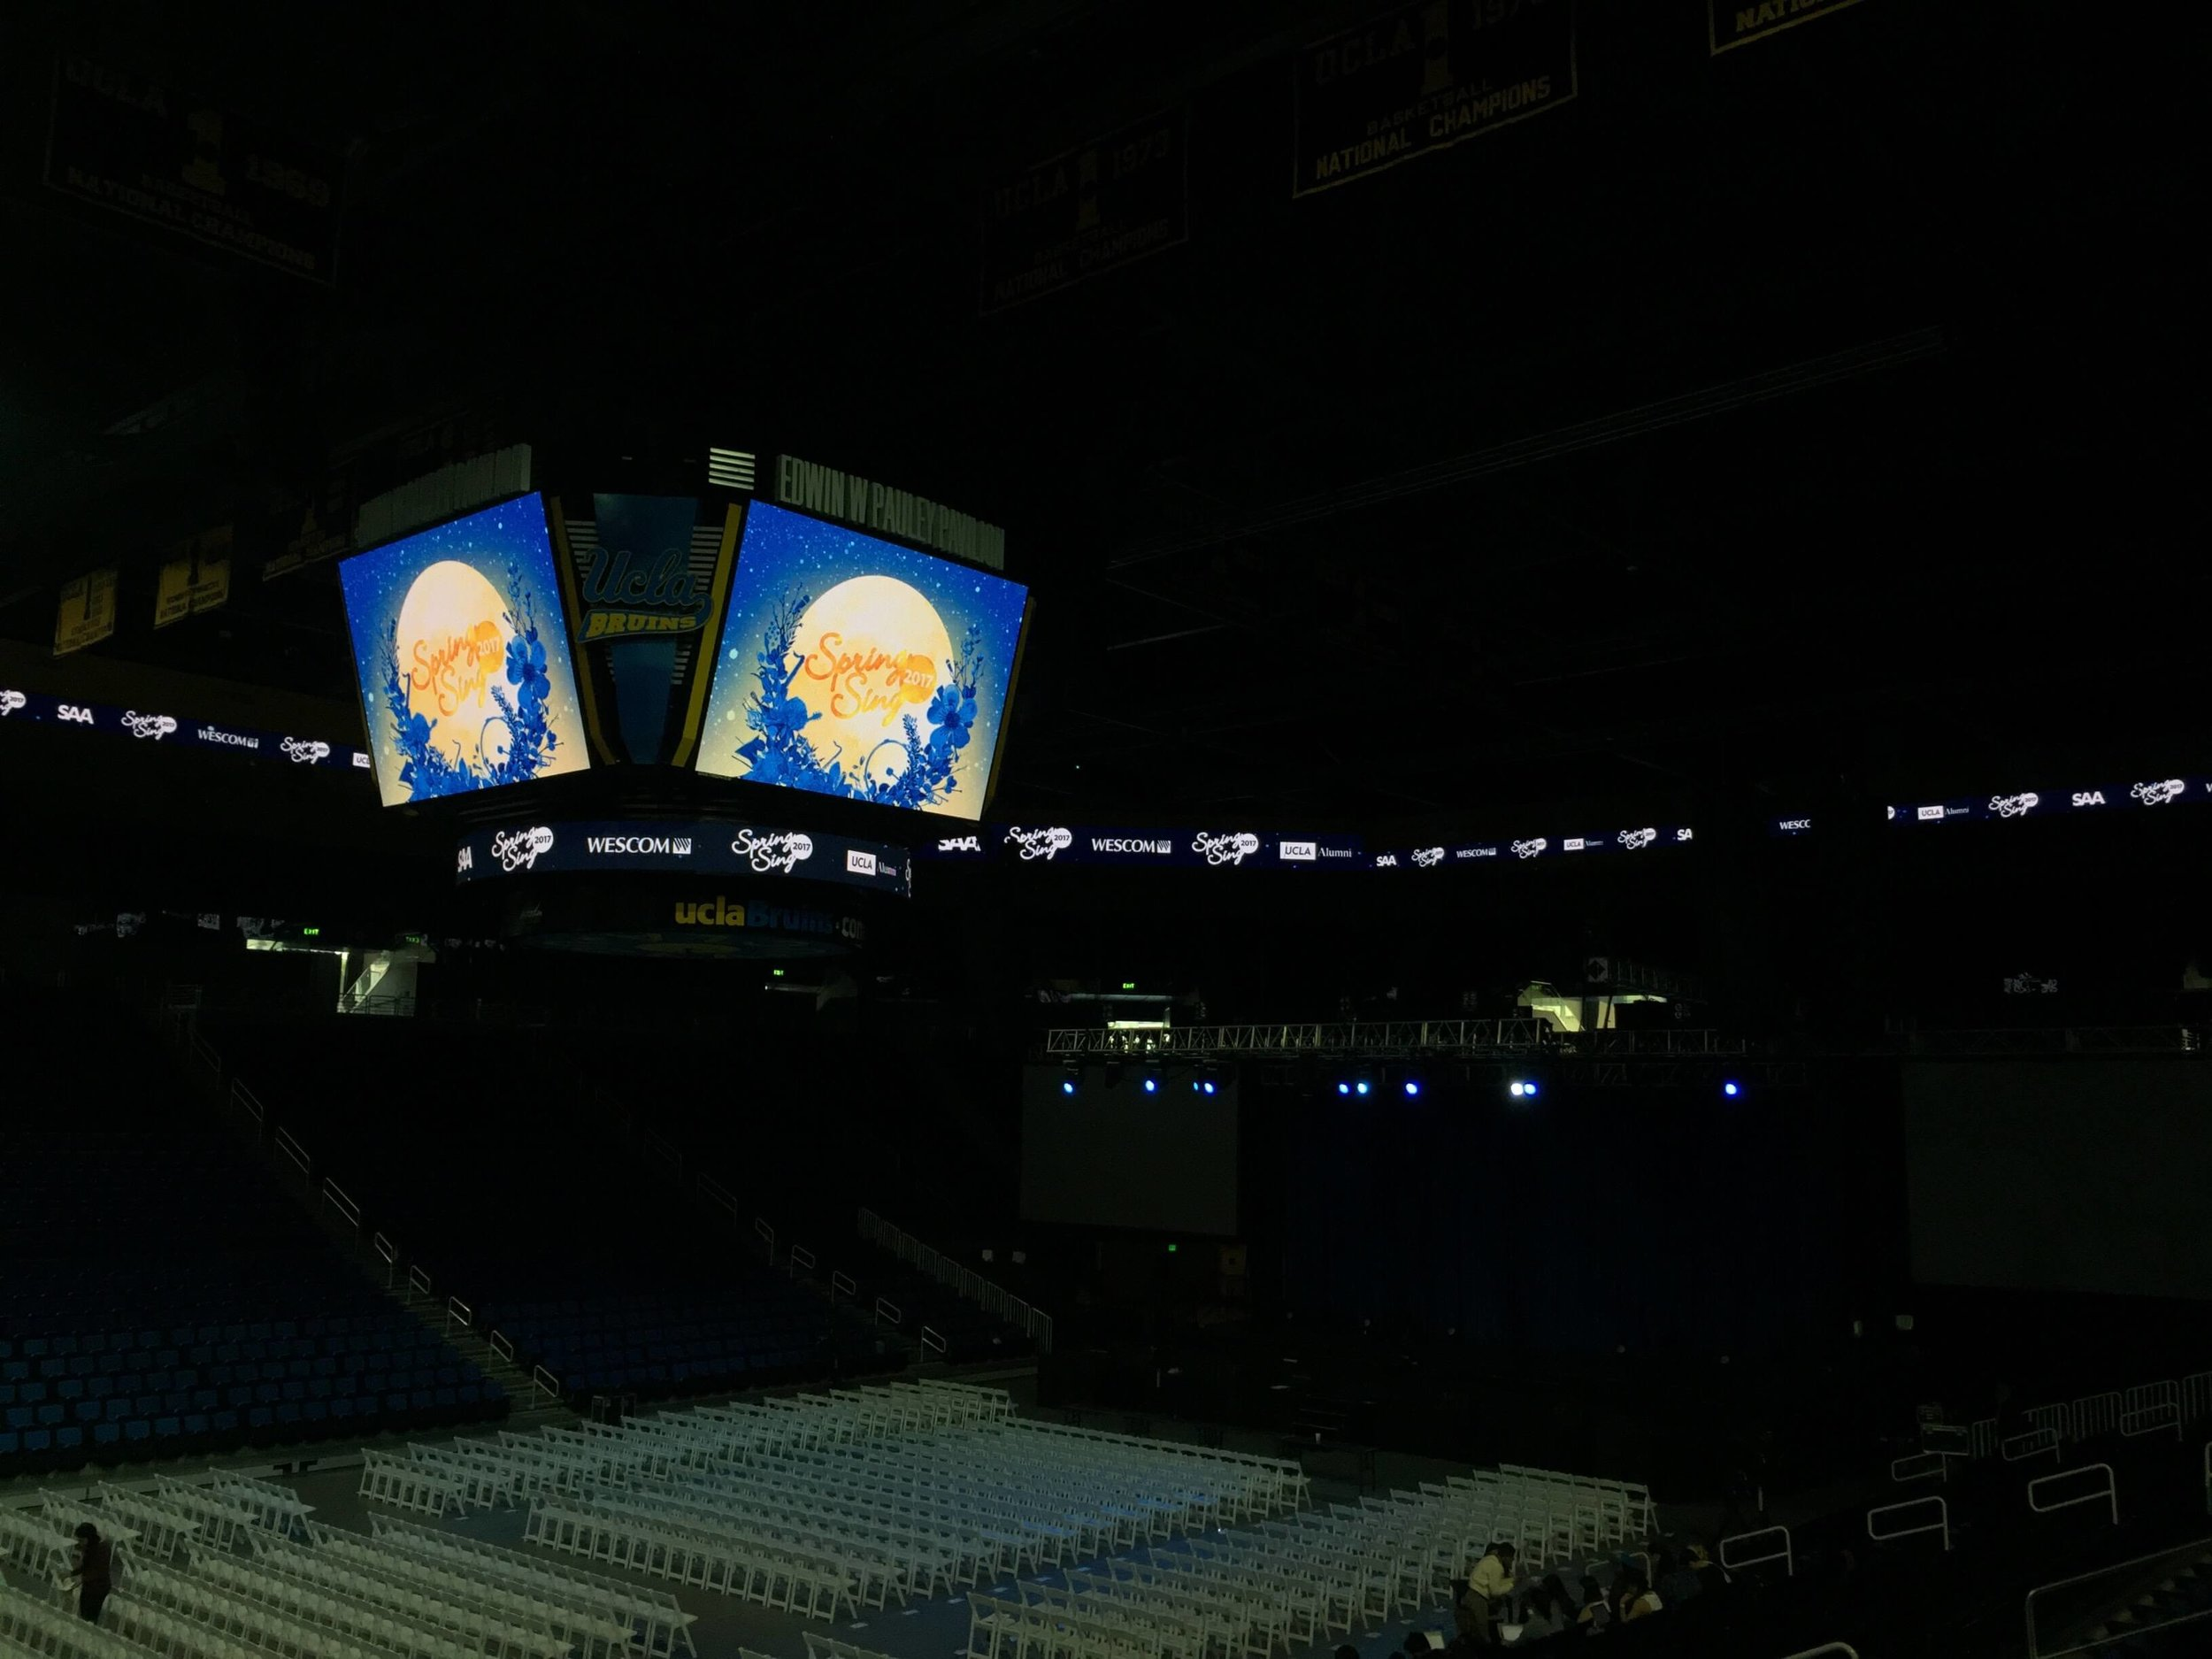 The artwork for the music event was then animated and displayed throughout the night on the jumbotrons, ribbons, and digital displays.